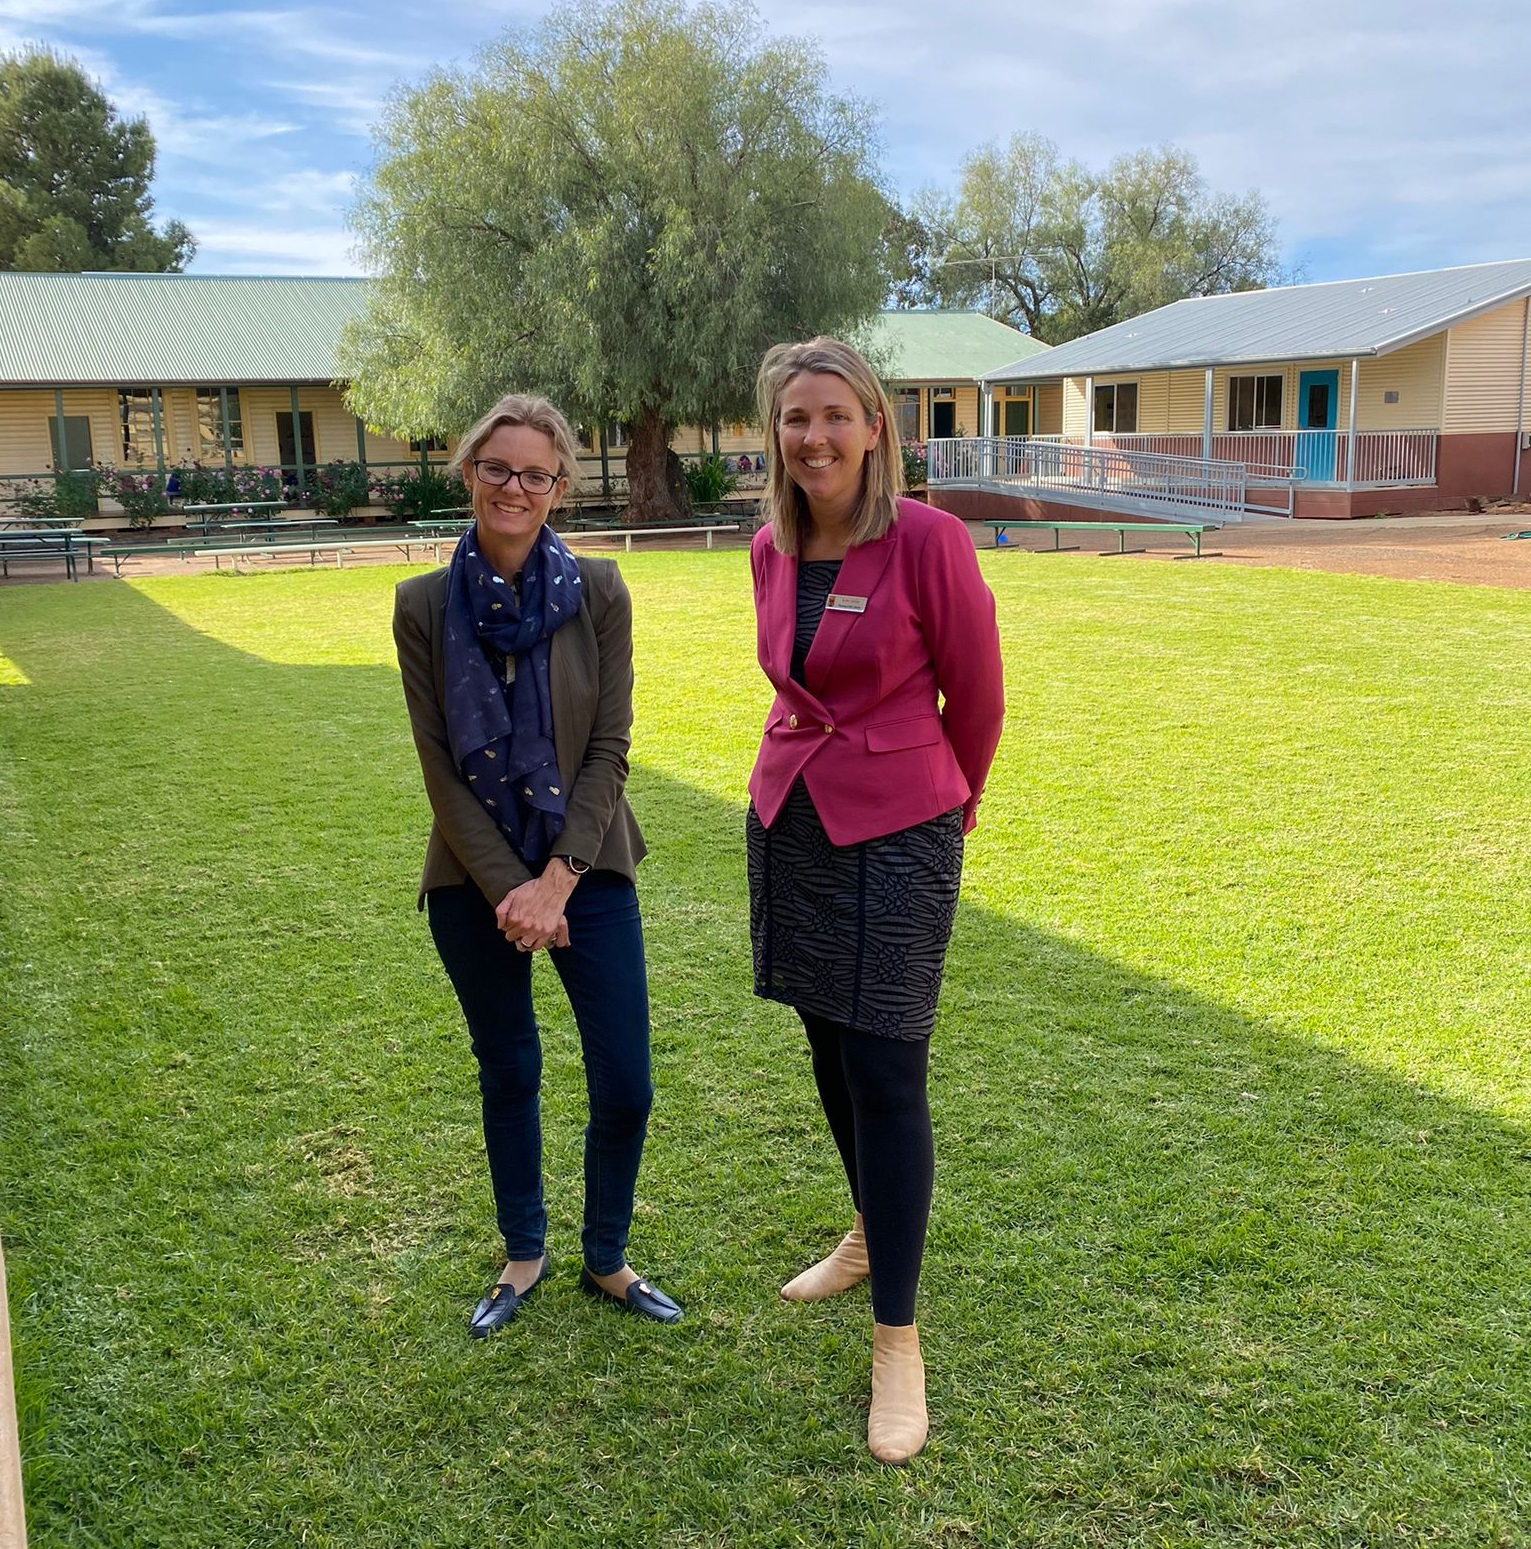 Steph Cooke and Kylie Taylor smile at the camera. Behind they classrooms can be seen.